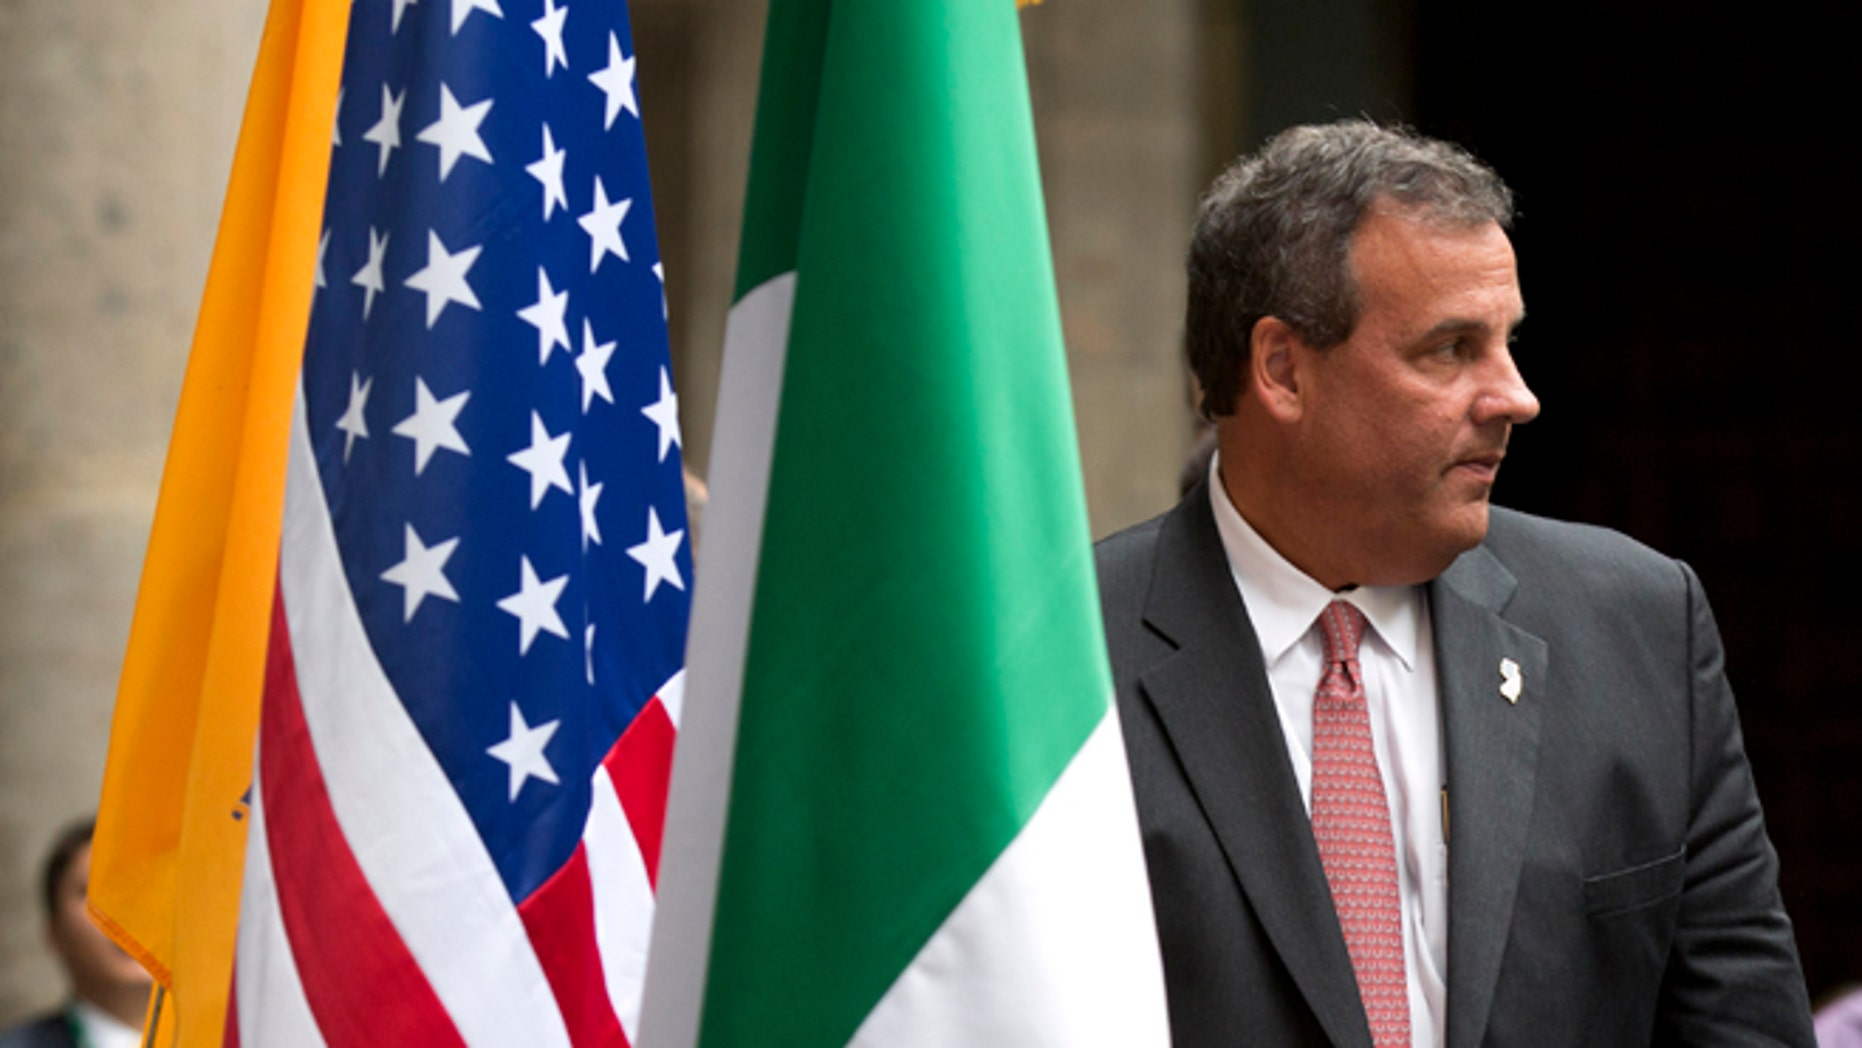 New Jersey Gov. Chris Christie, right, walks off the dais after an event to sign a higher education agreement between New Jersey and Mexico, at the Secretariat of Public Education in Mexico City, Thursday, Sept. 4, 2014. The potential 2016 U.S. presidential contender has called his three-day trade mission to Mexico a learning opportunity. (AP Photo/Rebecca Blackwell)